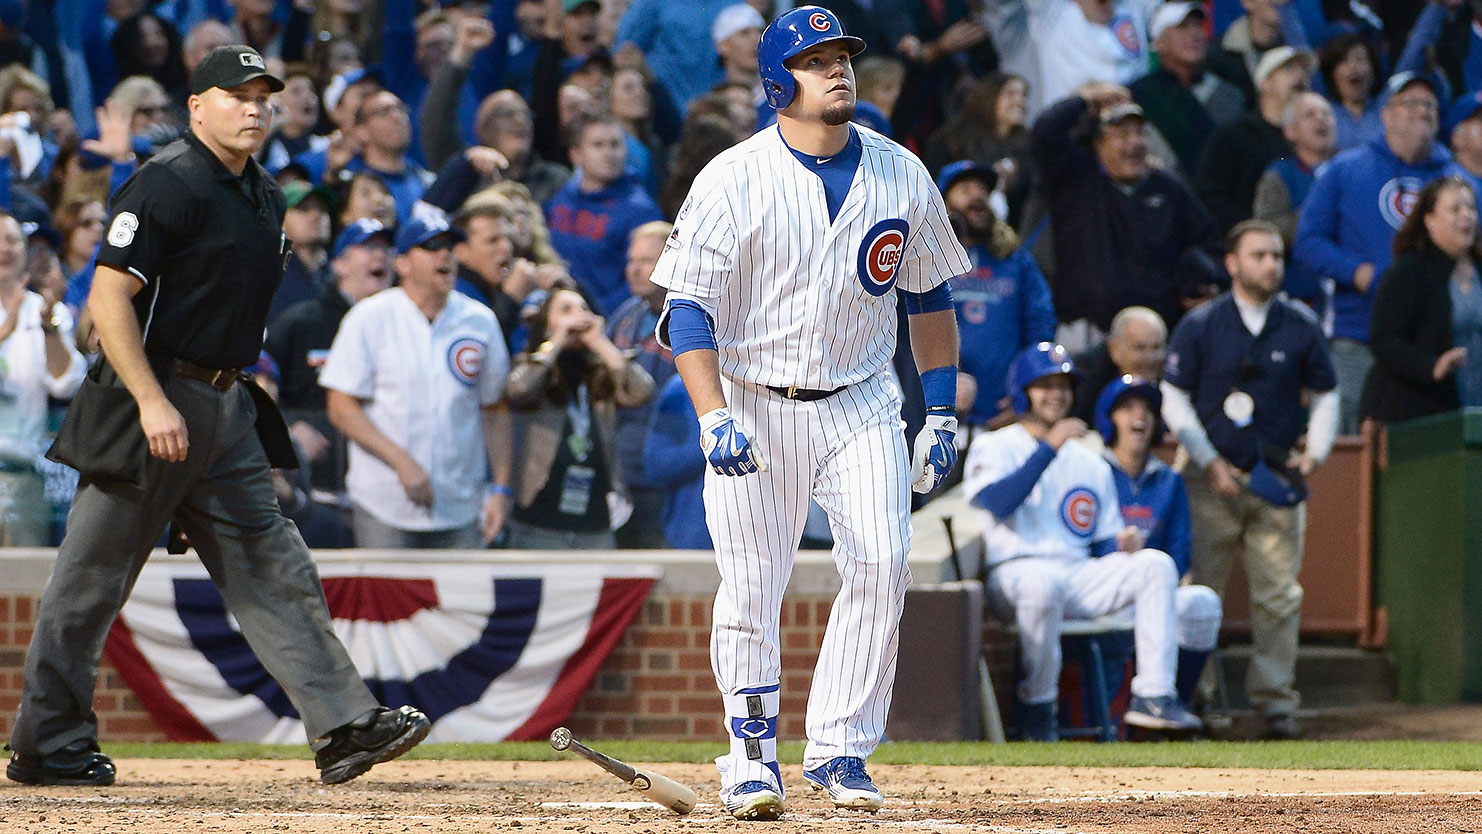 That's the face Kyle Schwarber makes after hitting a baseball to Mars.